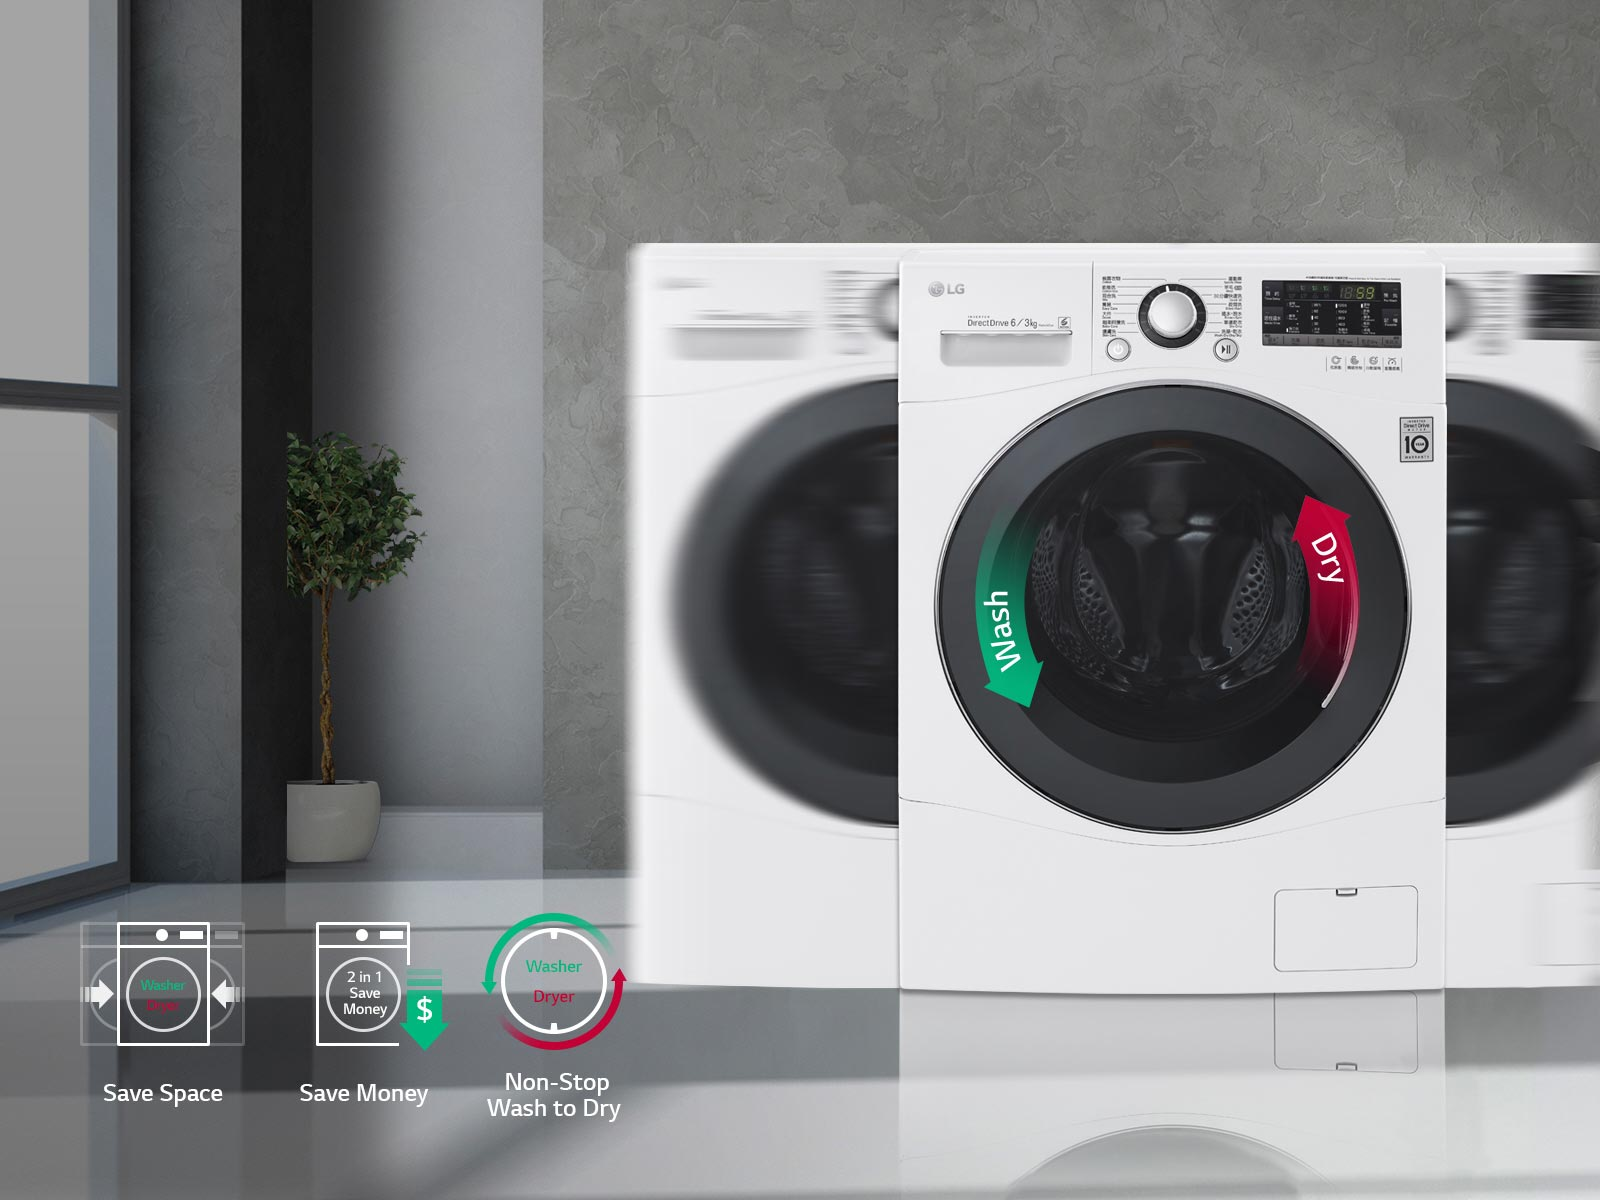 lg washing machine and dryer in one